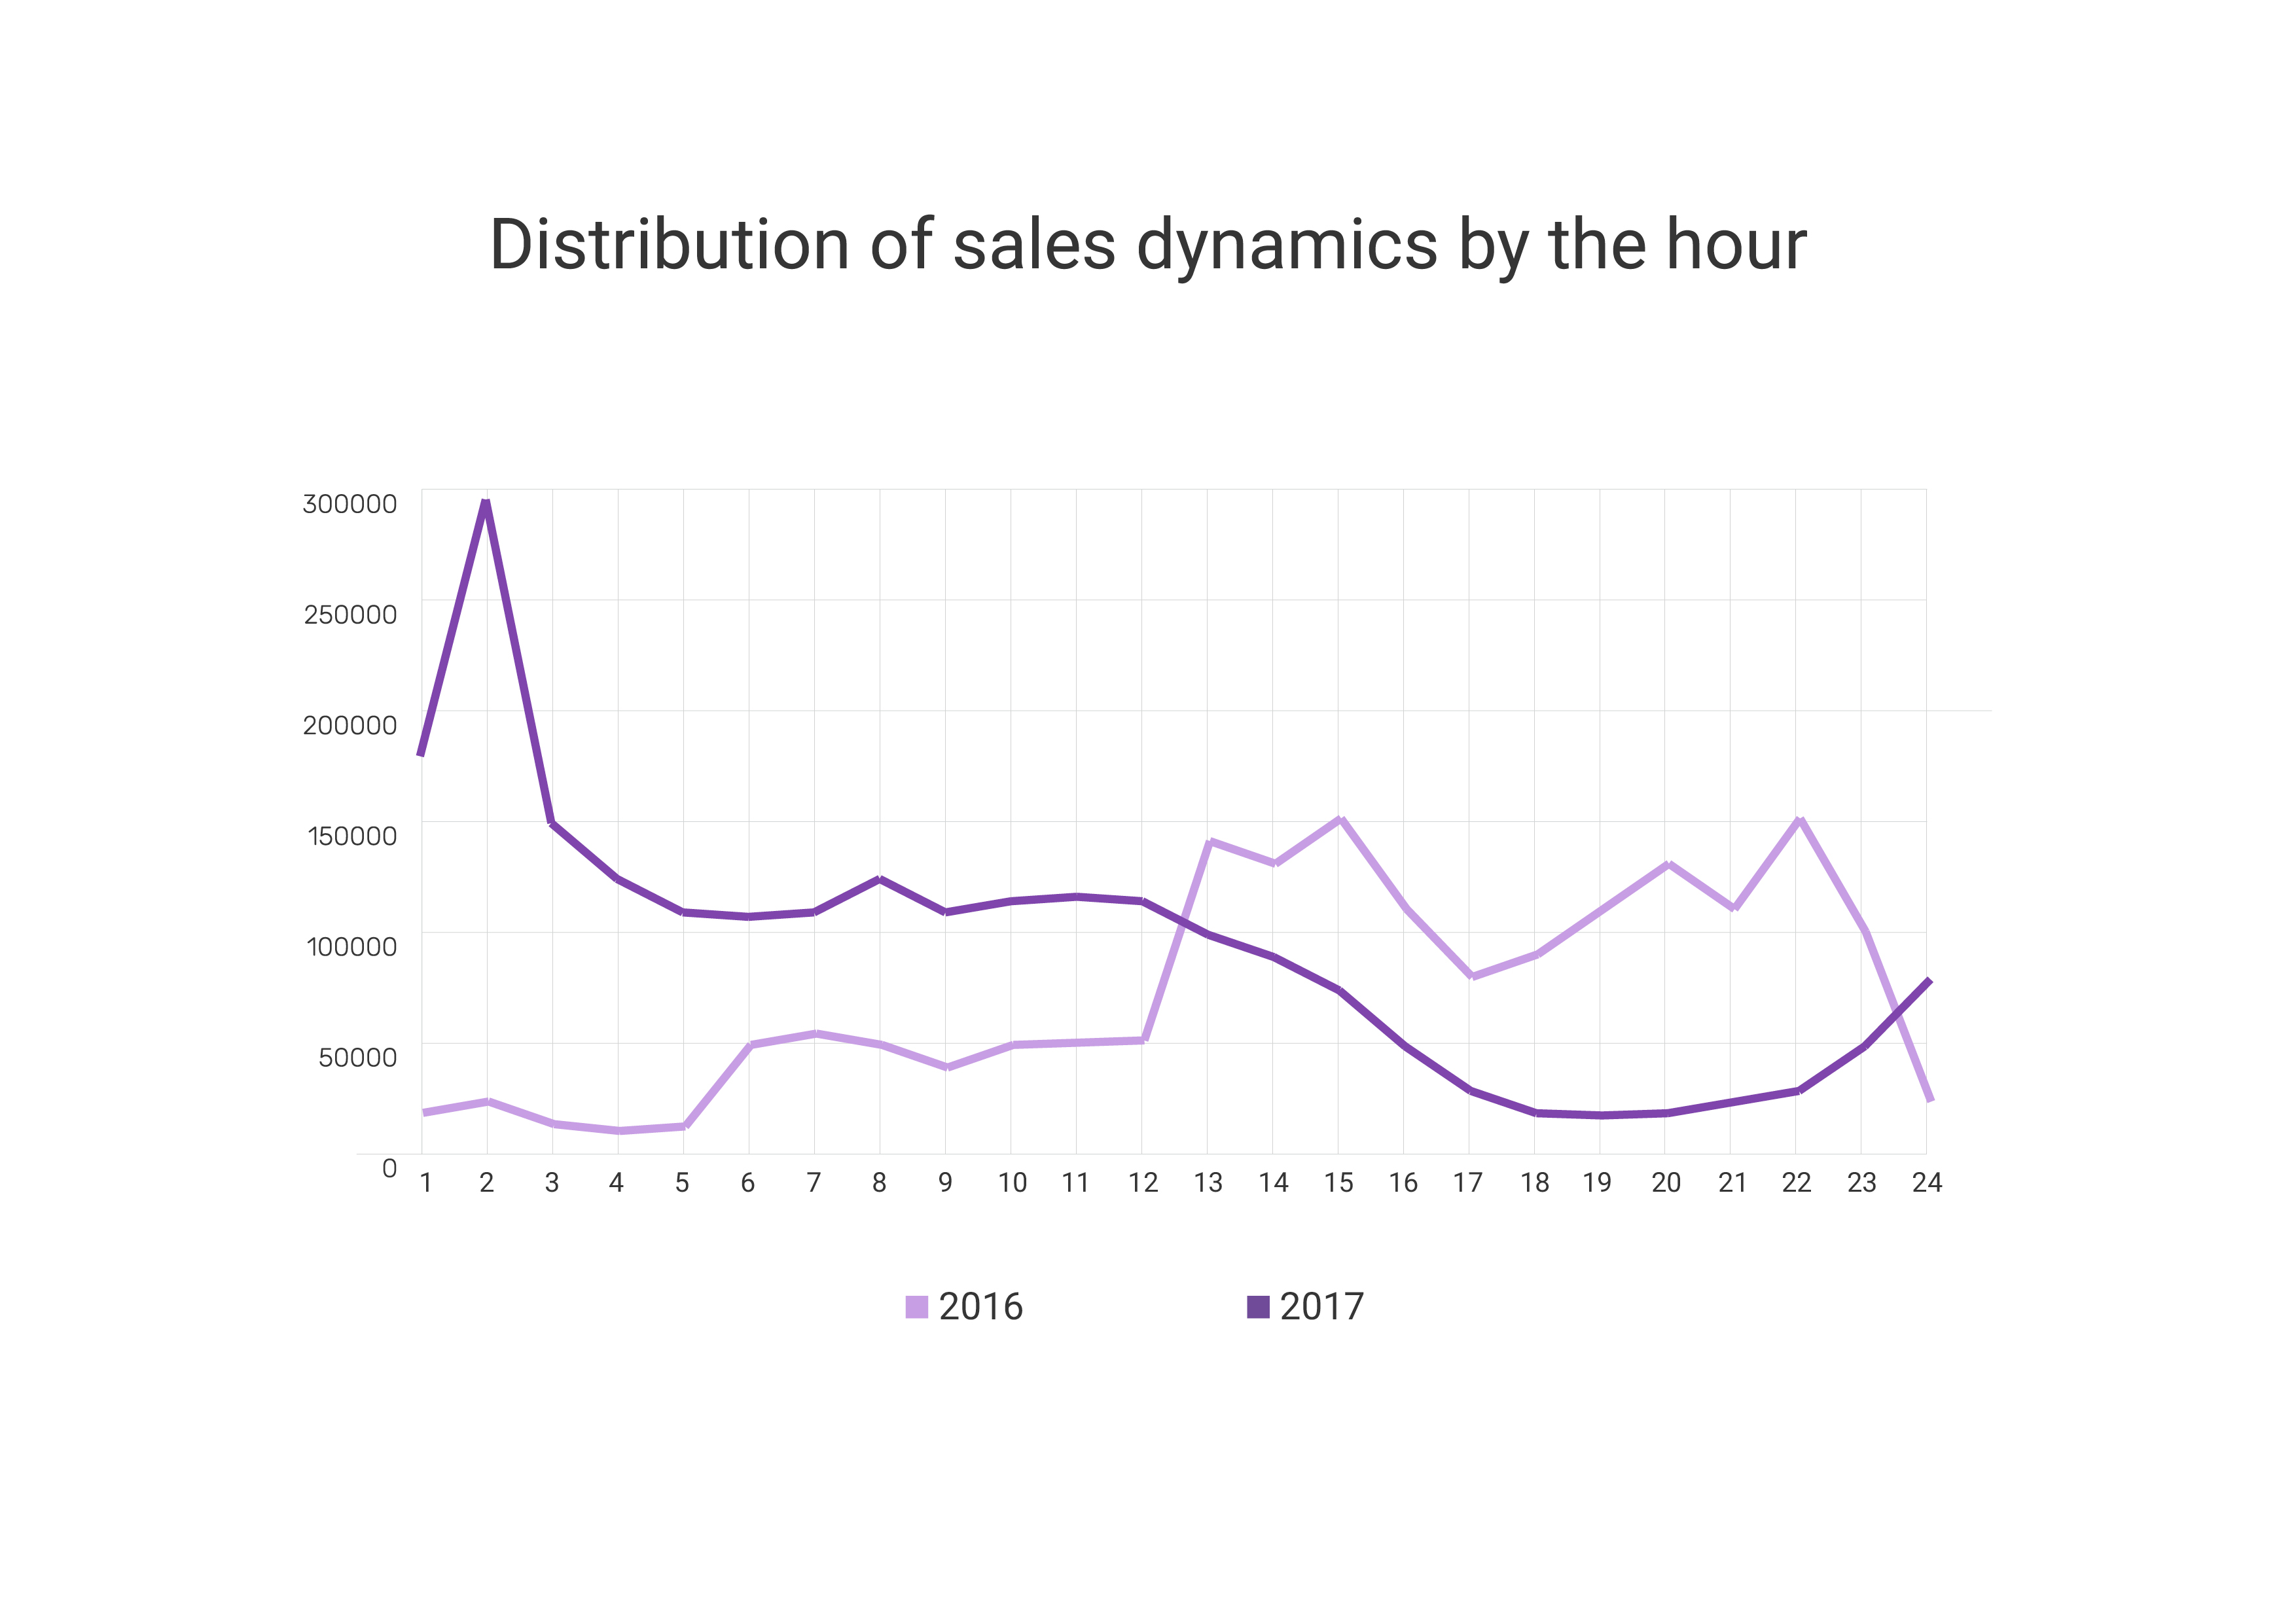 Distribution of sales dynamics by the hour